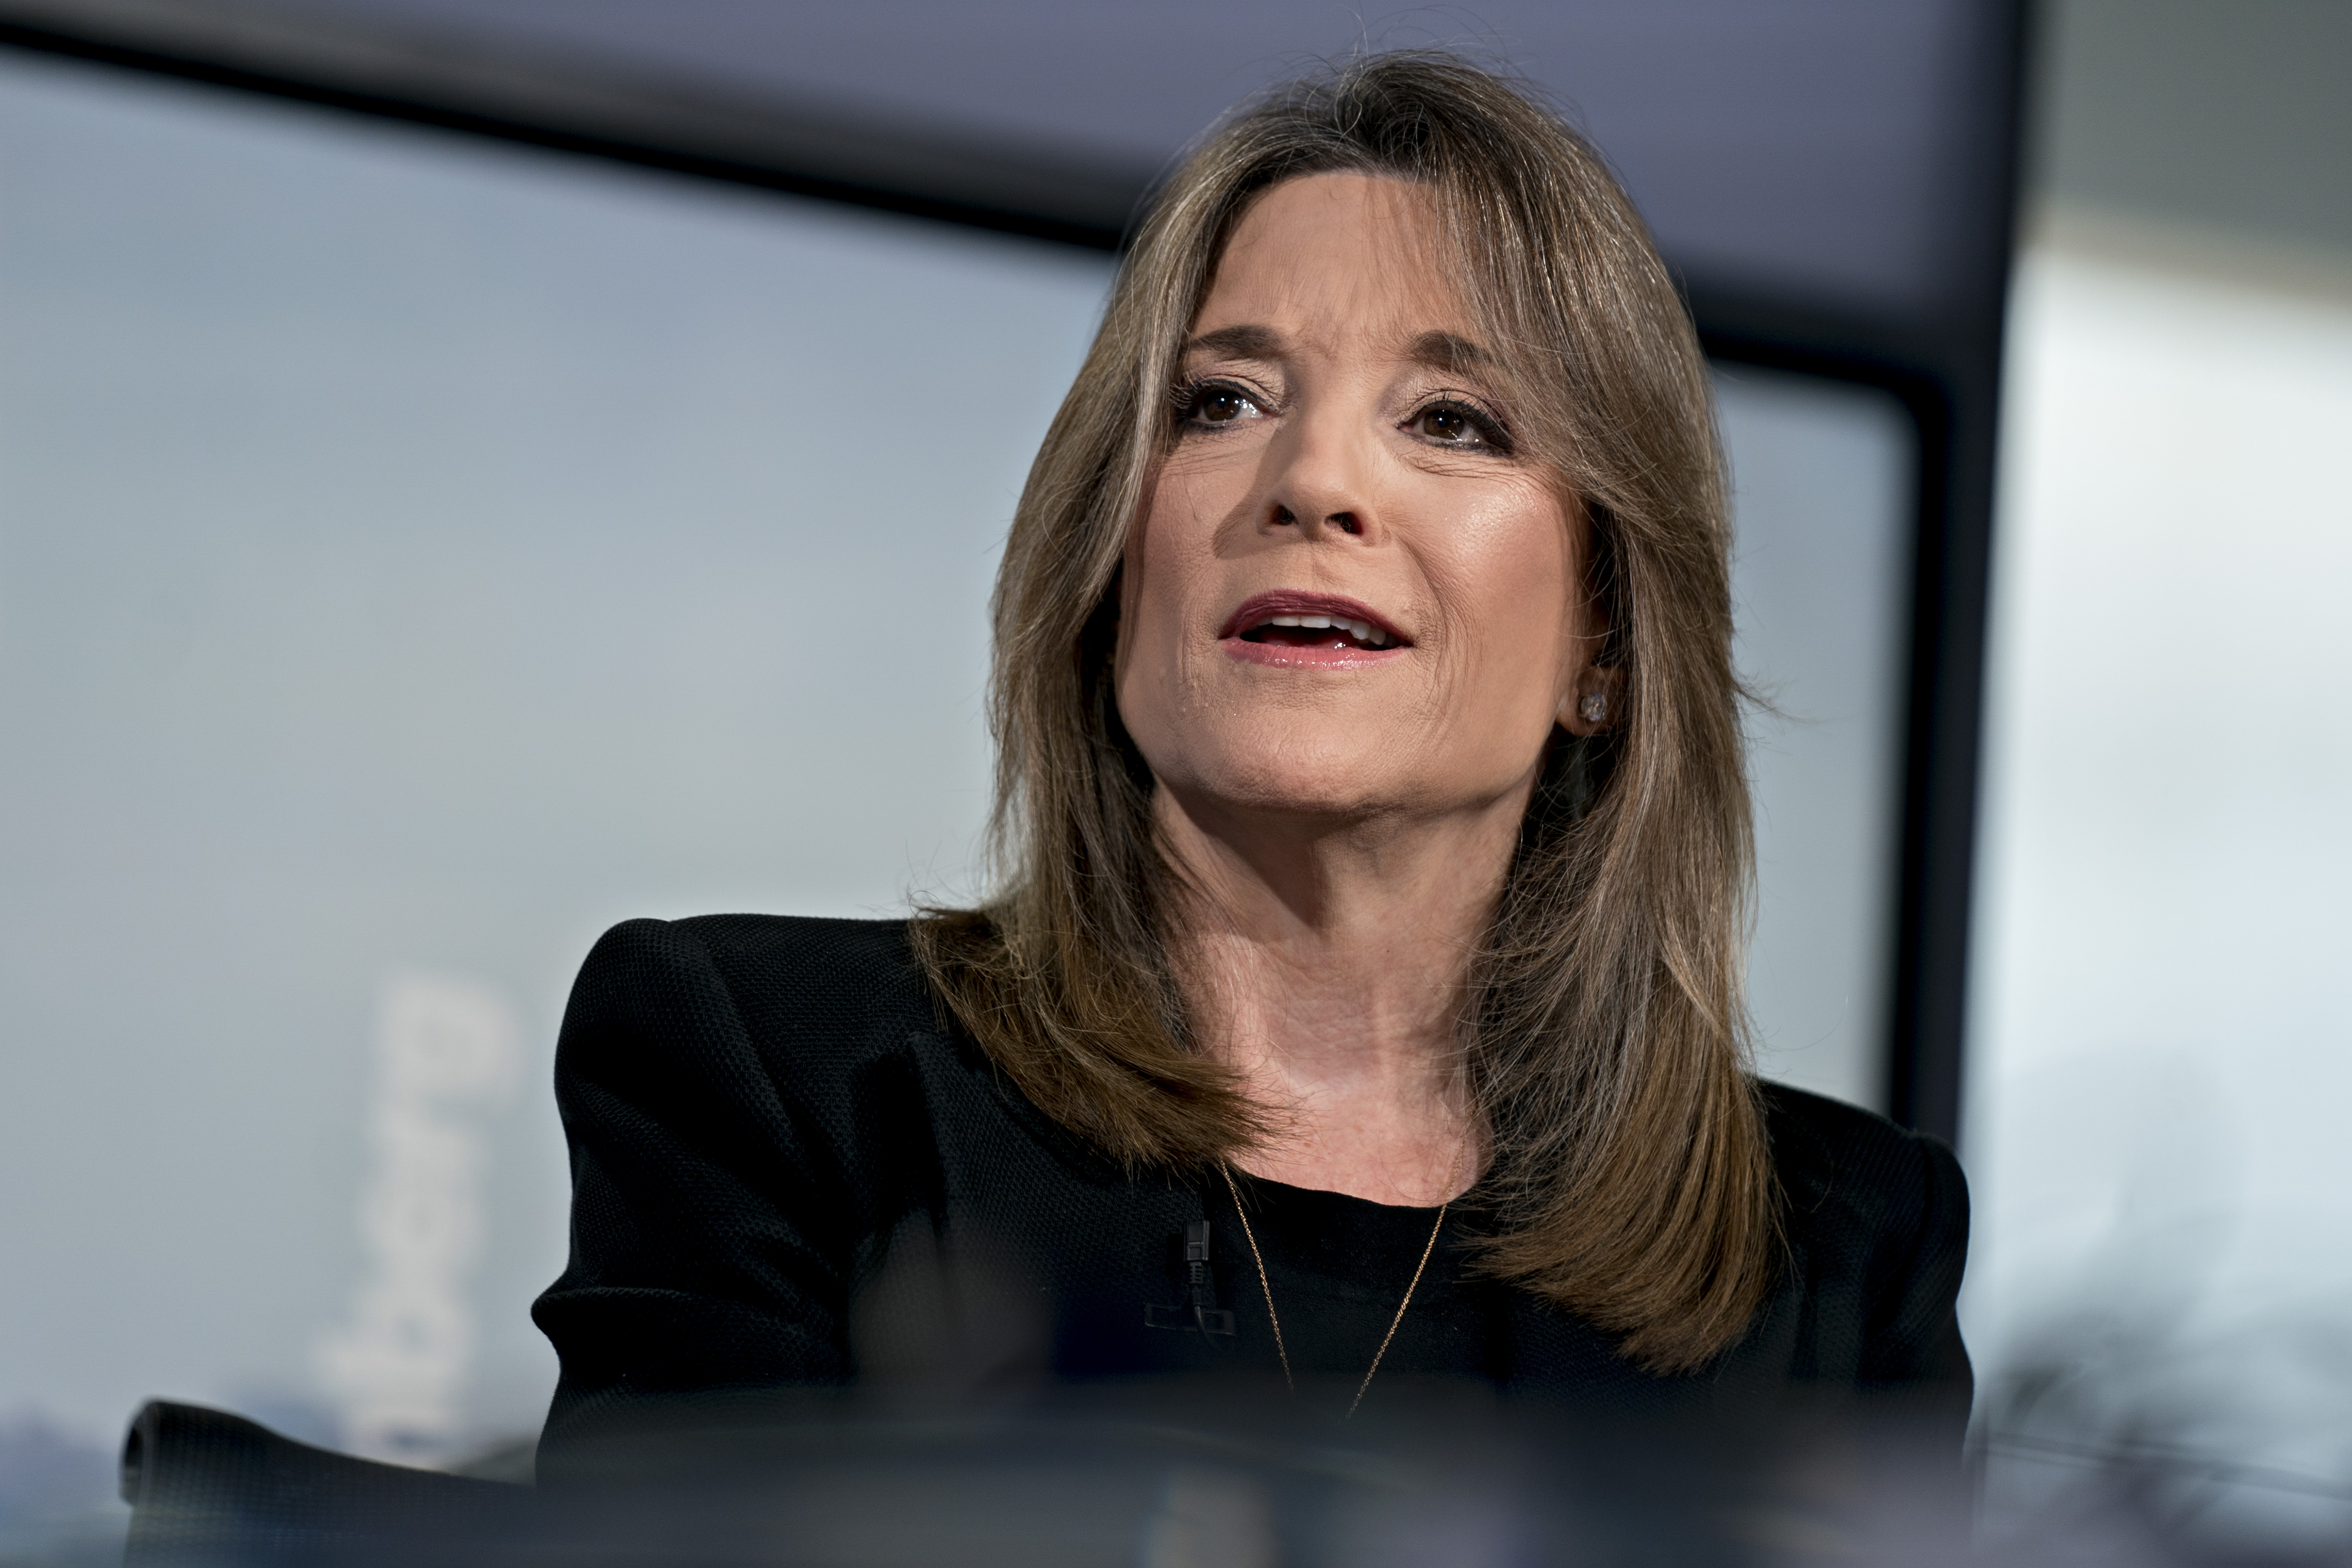 Marianne Williamson speaks during a Bloomberg Television interview in Washington, D.C., U.S., on Wednesday, Aug. 21, 2019.